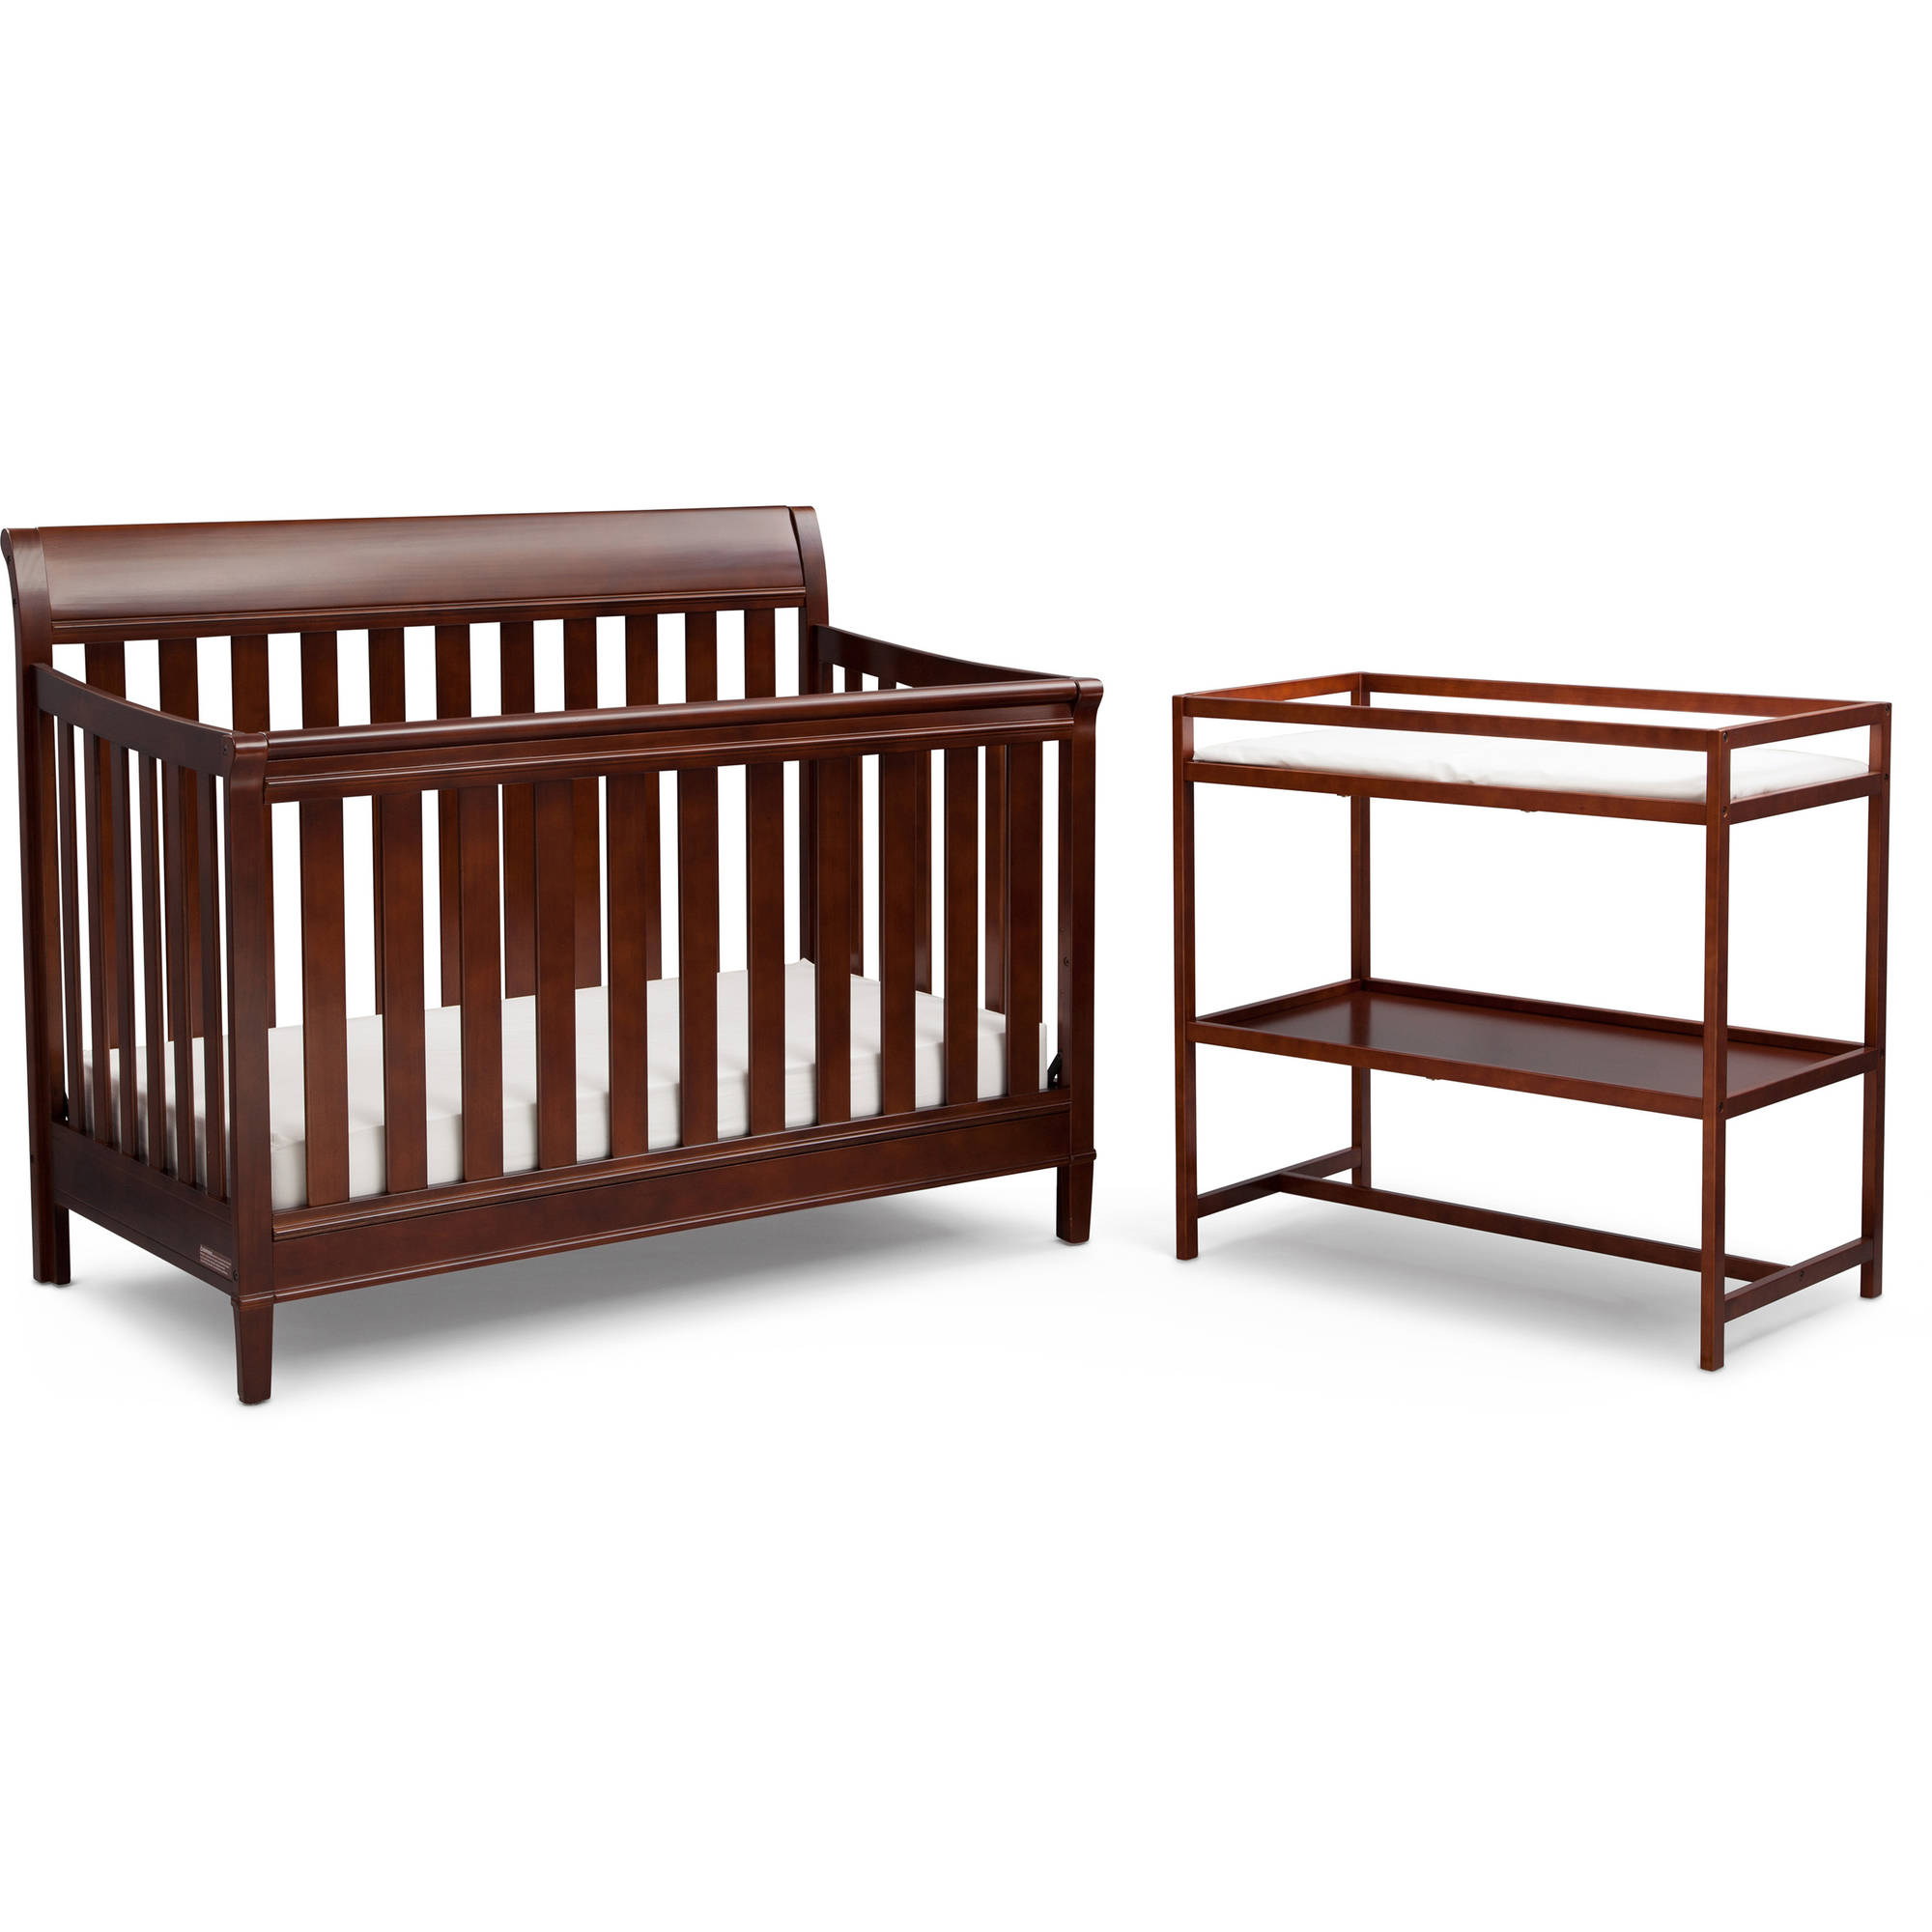 Delta Children Harbor 4-in-1 Convertible Crib & Changing Table Set Espresso Truffle